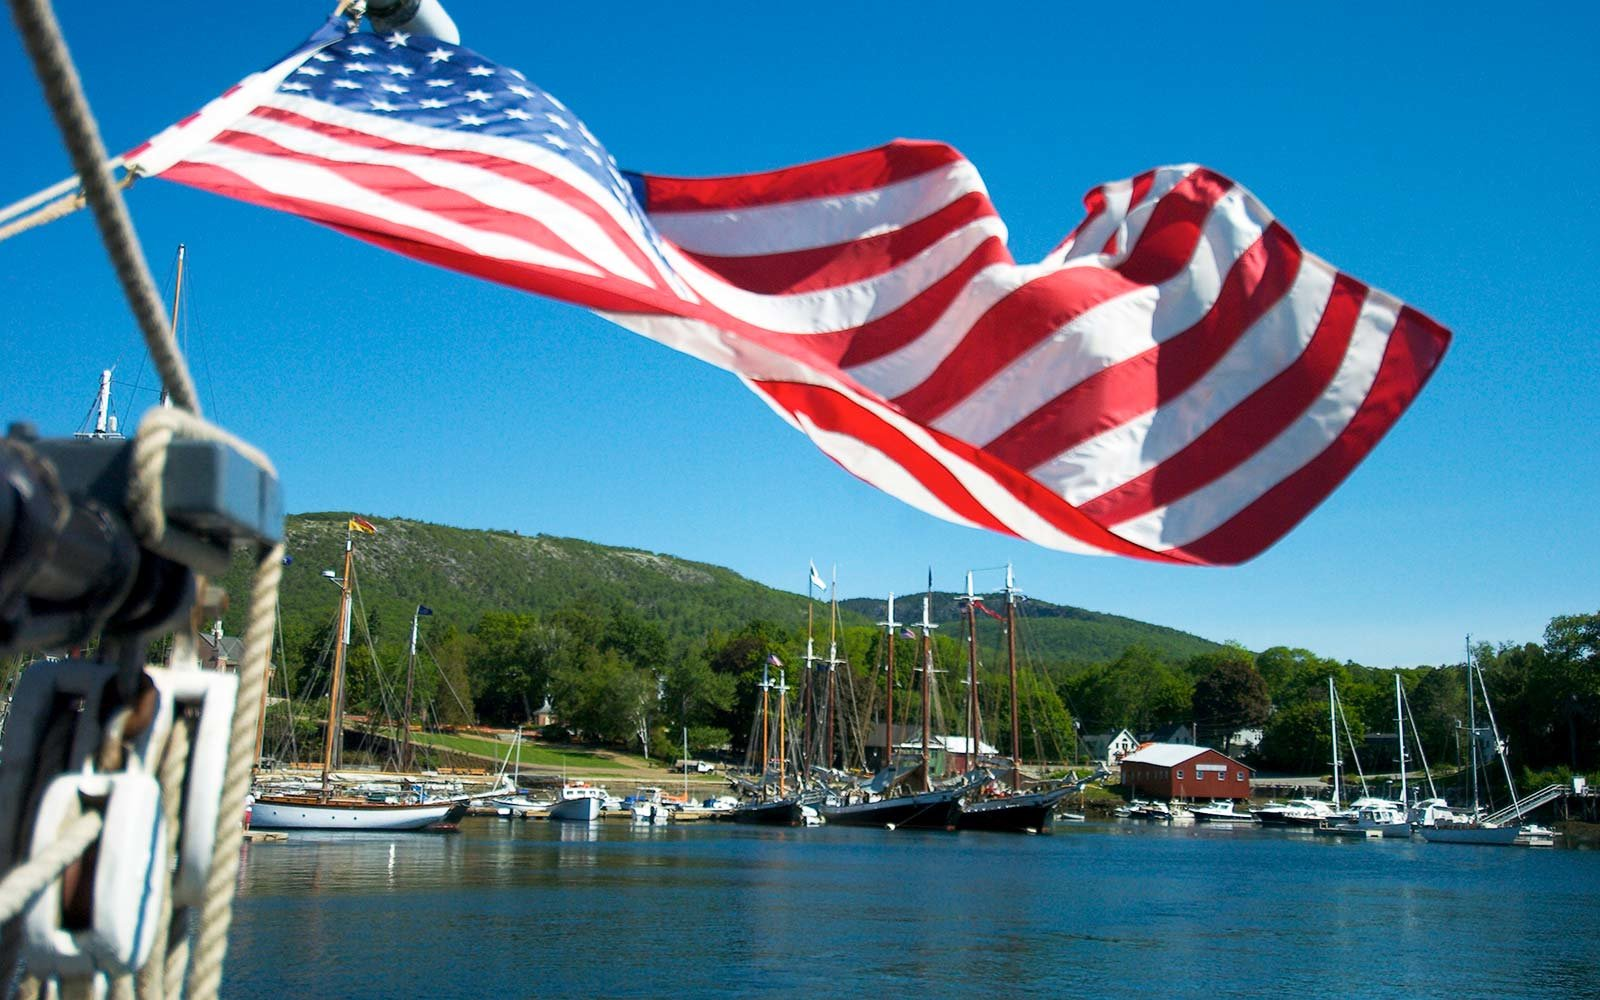 Best Time to Book July 4 Travel